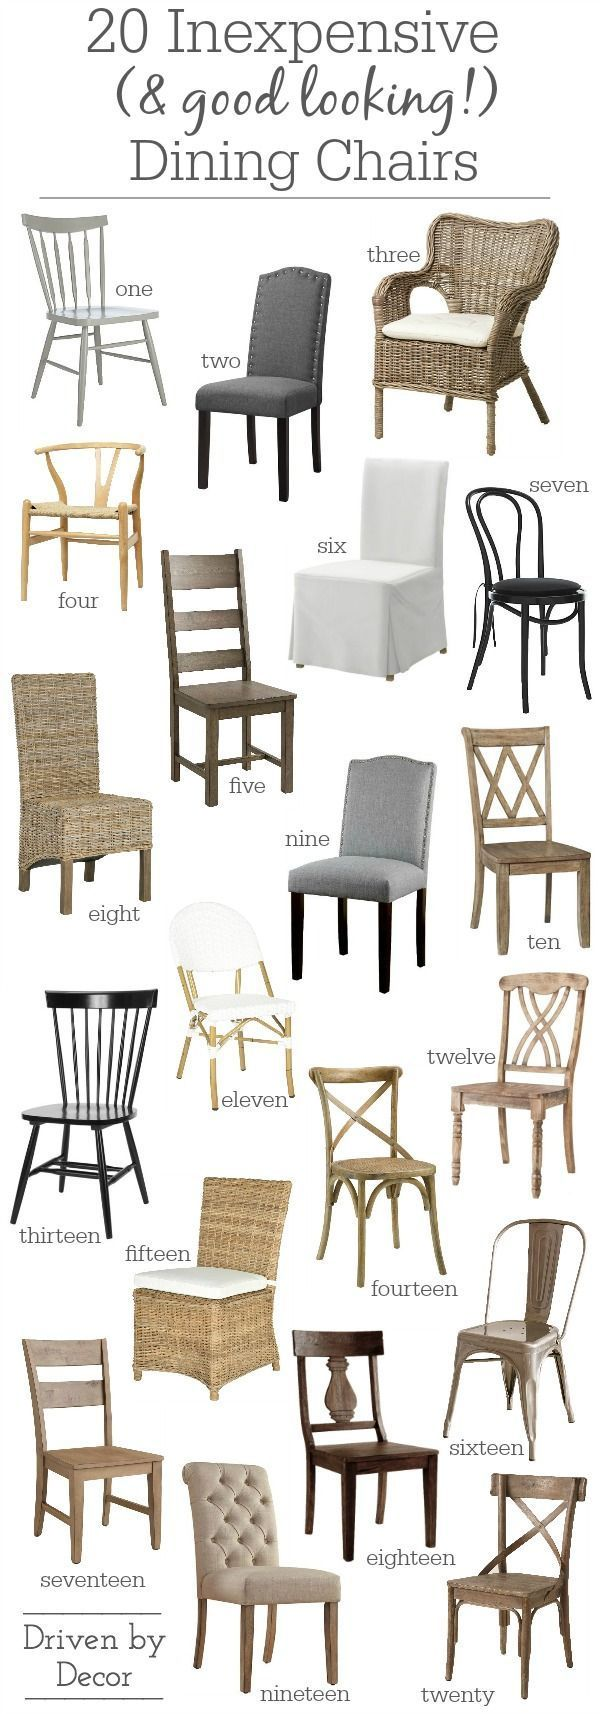 Great post on where to find attractive and affordable dining room chairs along with links to 20 favorites!